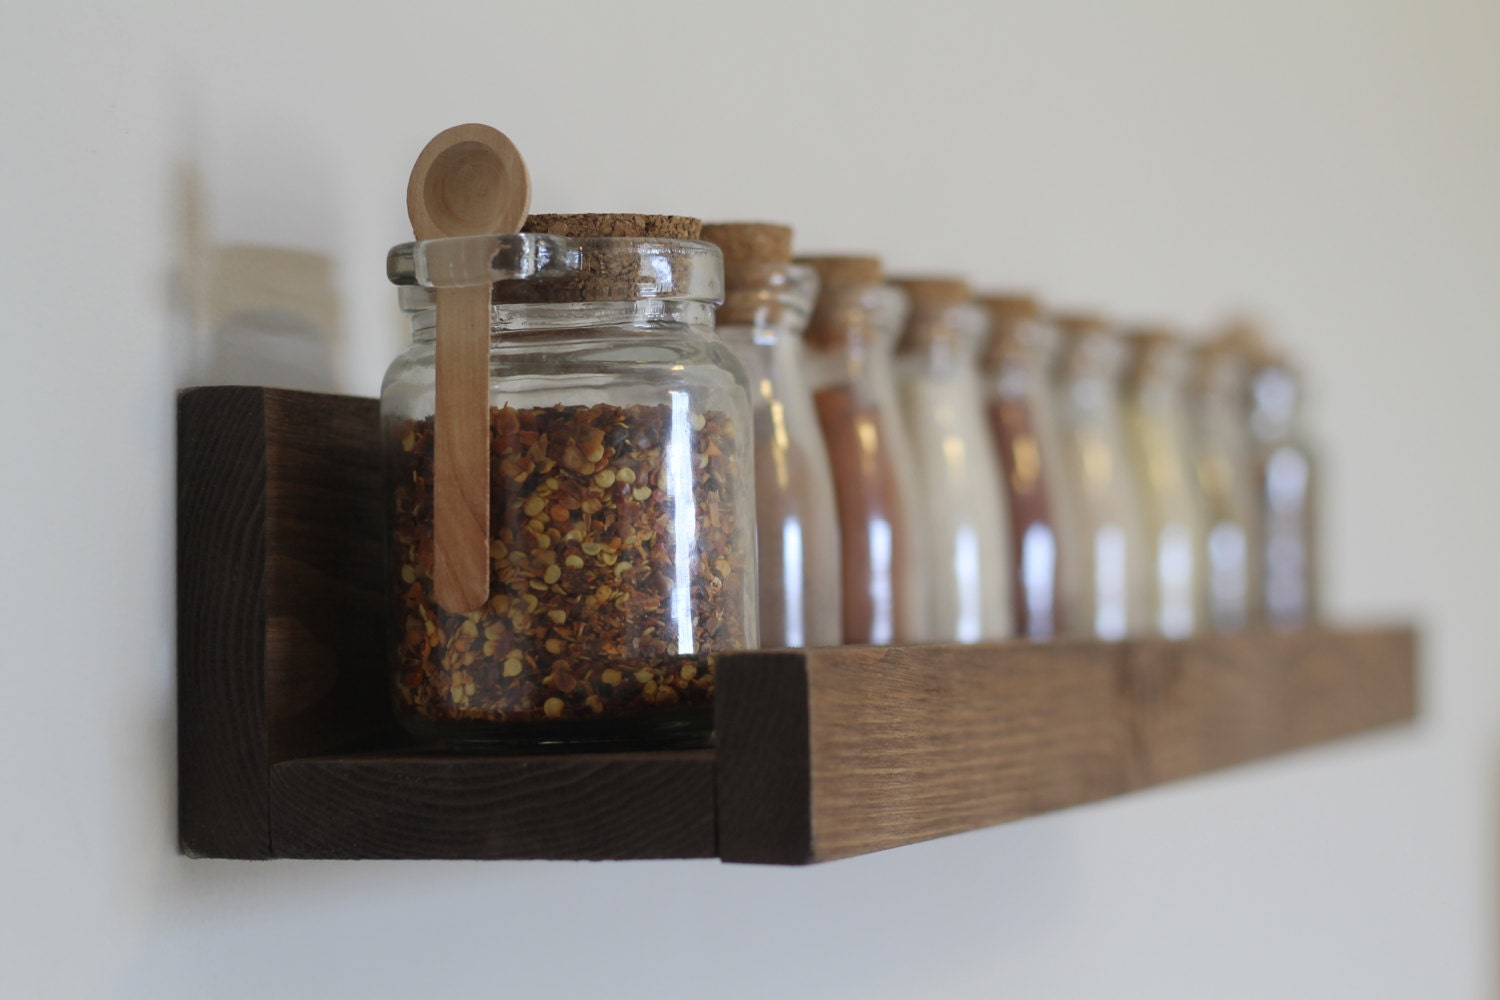 Rustic Wooden Spice Rack Ledge Shelf By DunnRusticDesigns